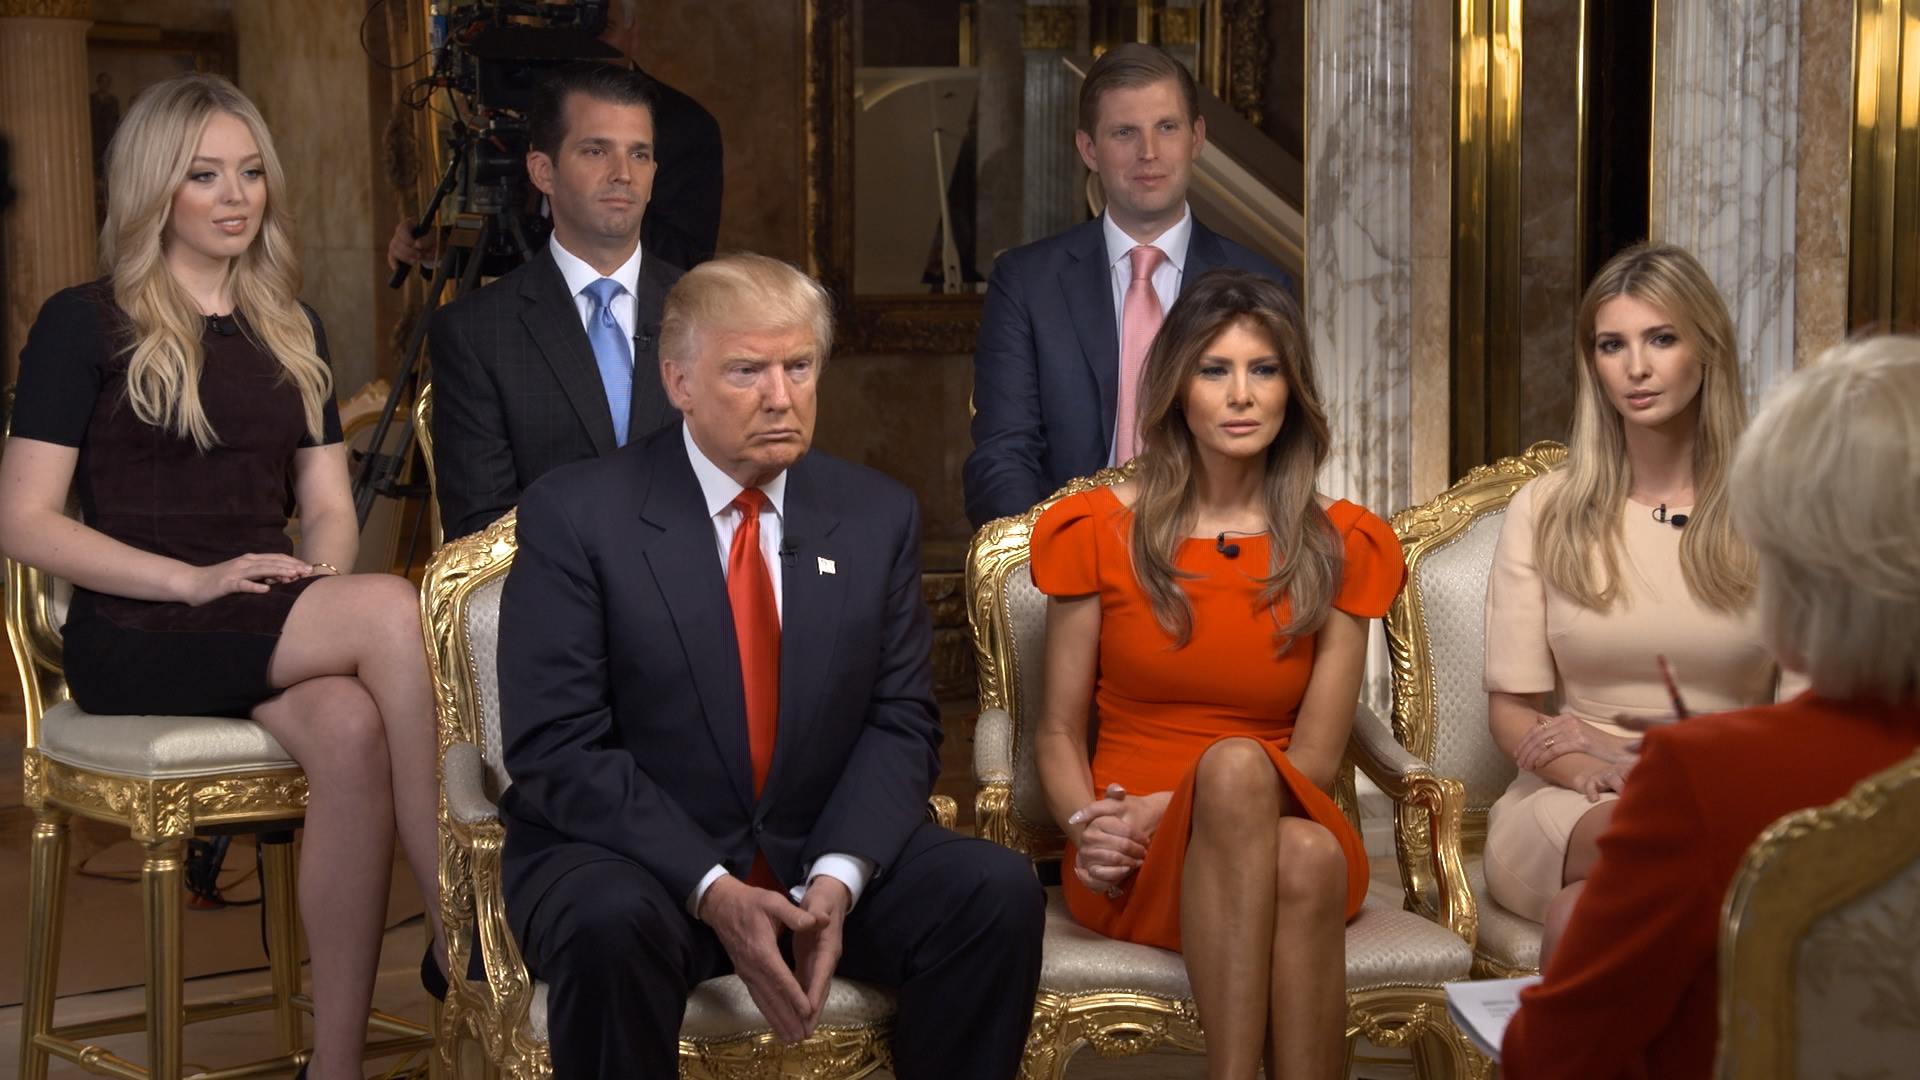 60 Minutes Correspondent Lesley Stahl interviews President-elect Donald J. Trump and his family shown here from left: Tiffany Trump, Donald Trump, Jr., Donald Trump, Eric Trump, Melania Trump, Ivanka Trump at his Manhattan home on November 11.